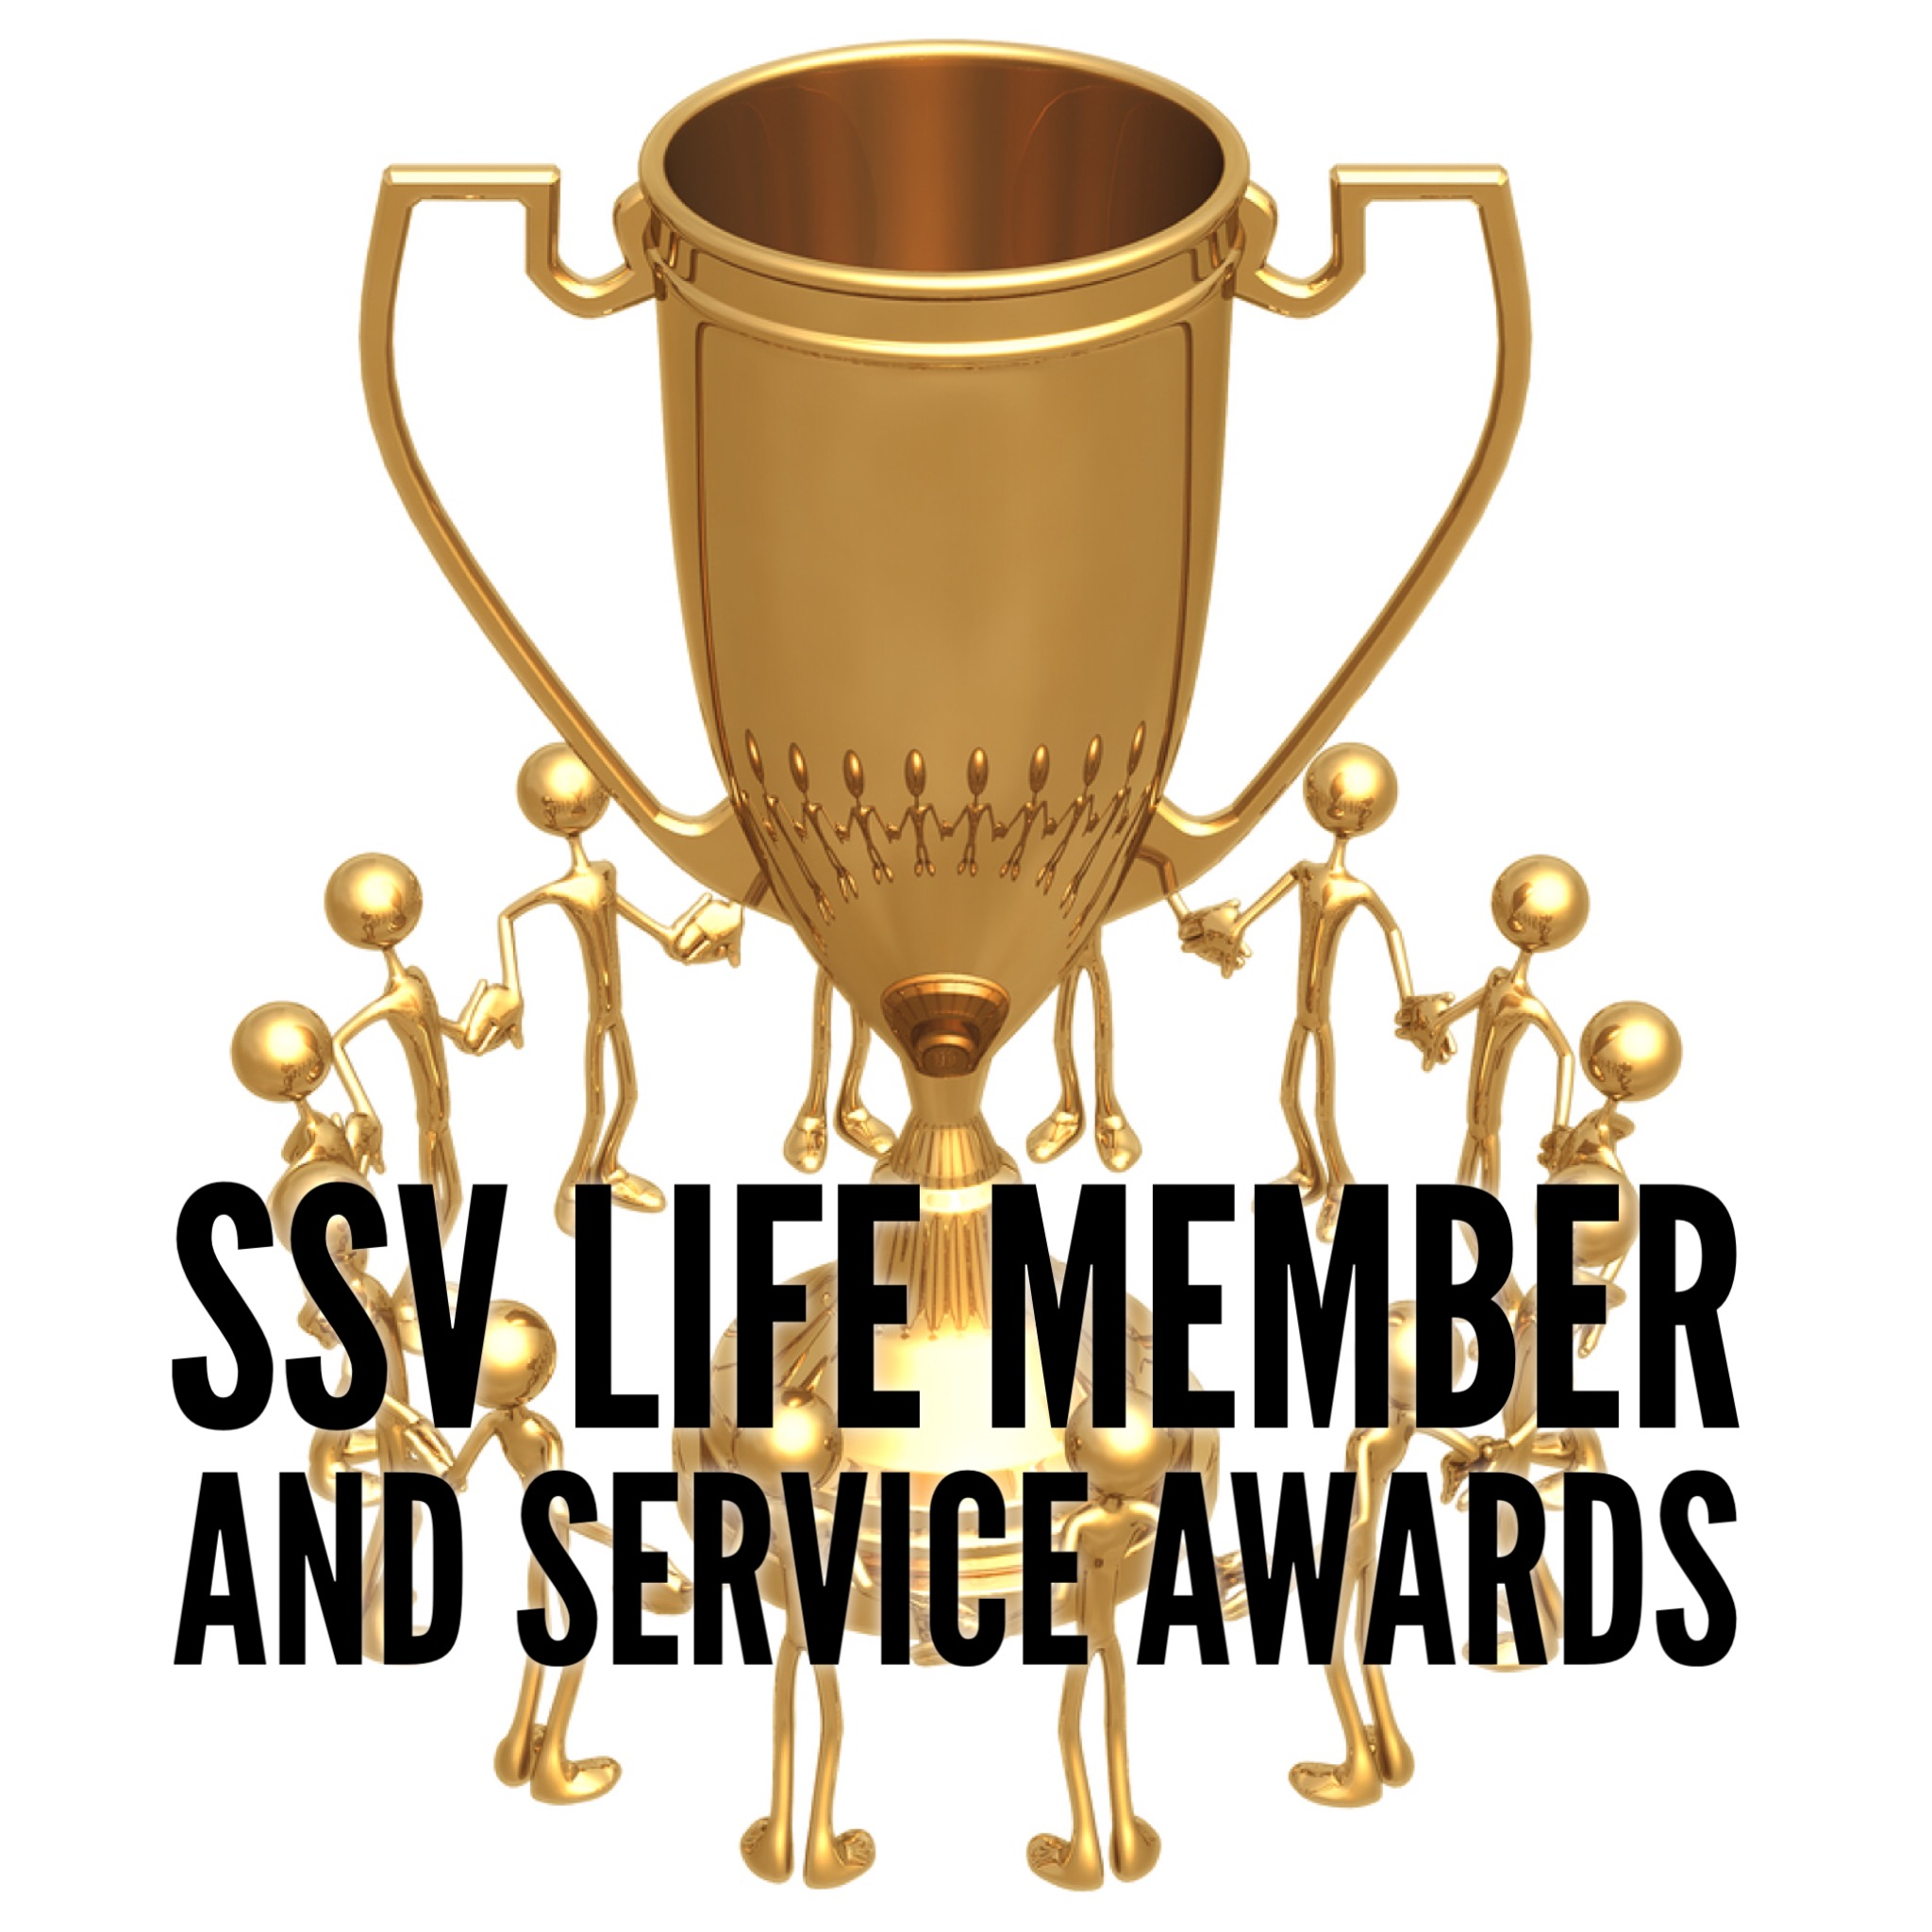 SSVLifeMembersanderviceAwards.jpg